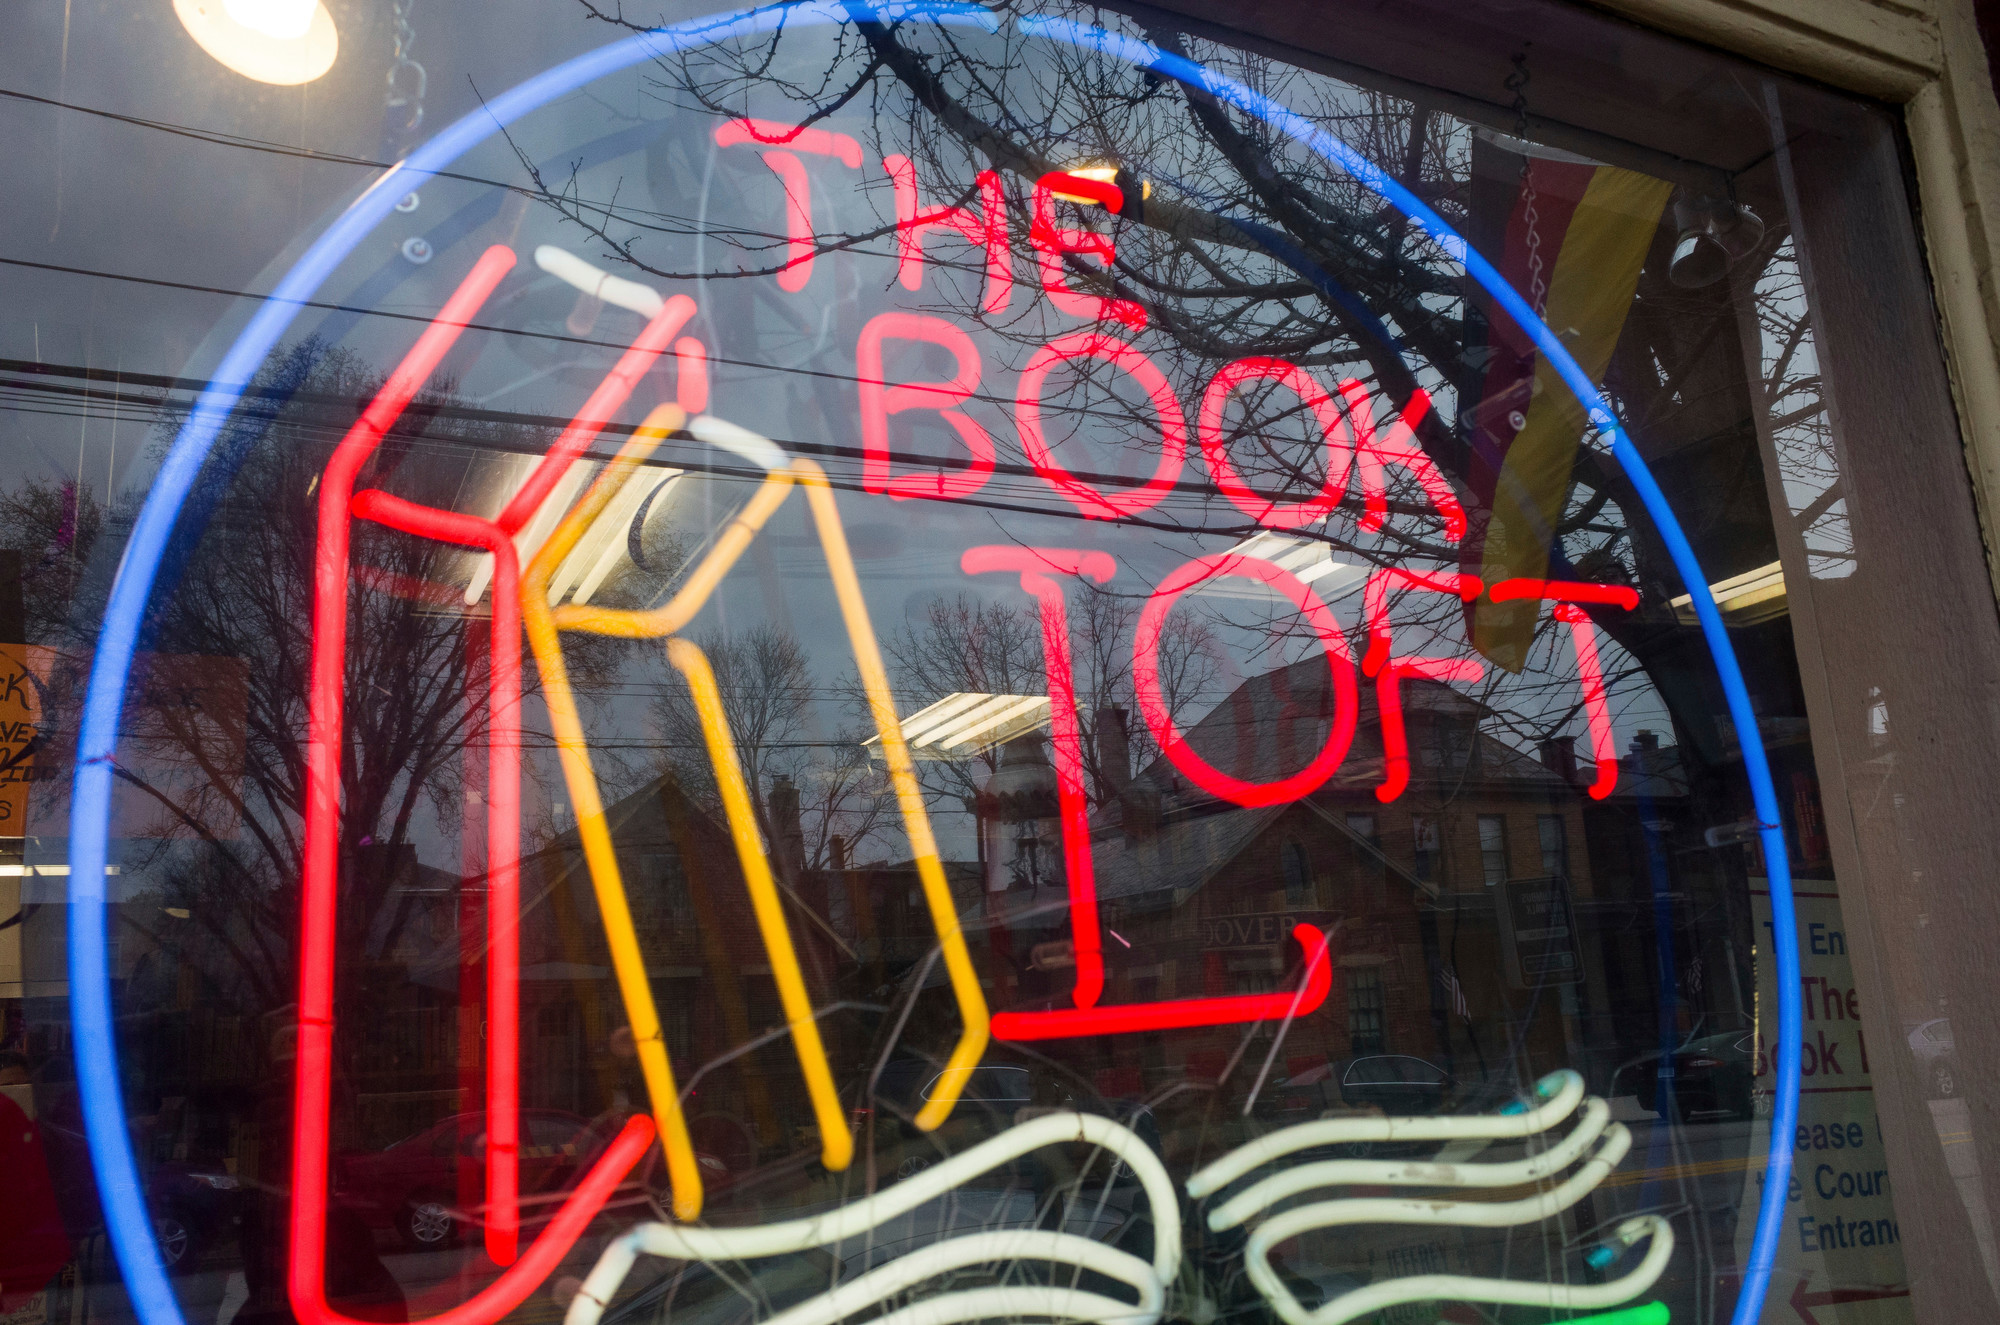 Neighborhood buildings are reflected in the front window of The Book Loft of German Village in Columbus, Ohio, on Feb. 17. The 40-year-old bookstore features 32 rooms of books.